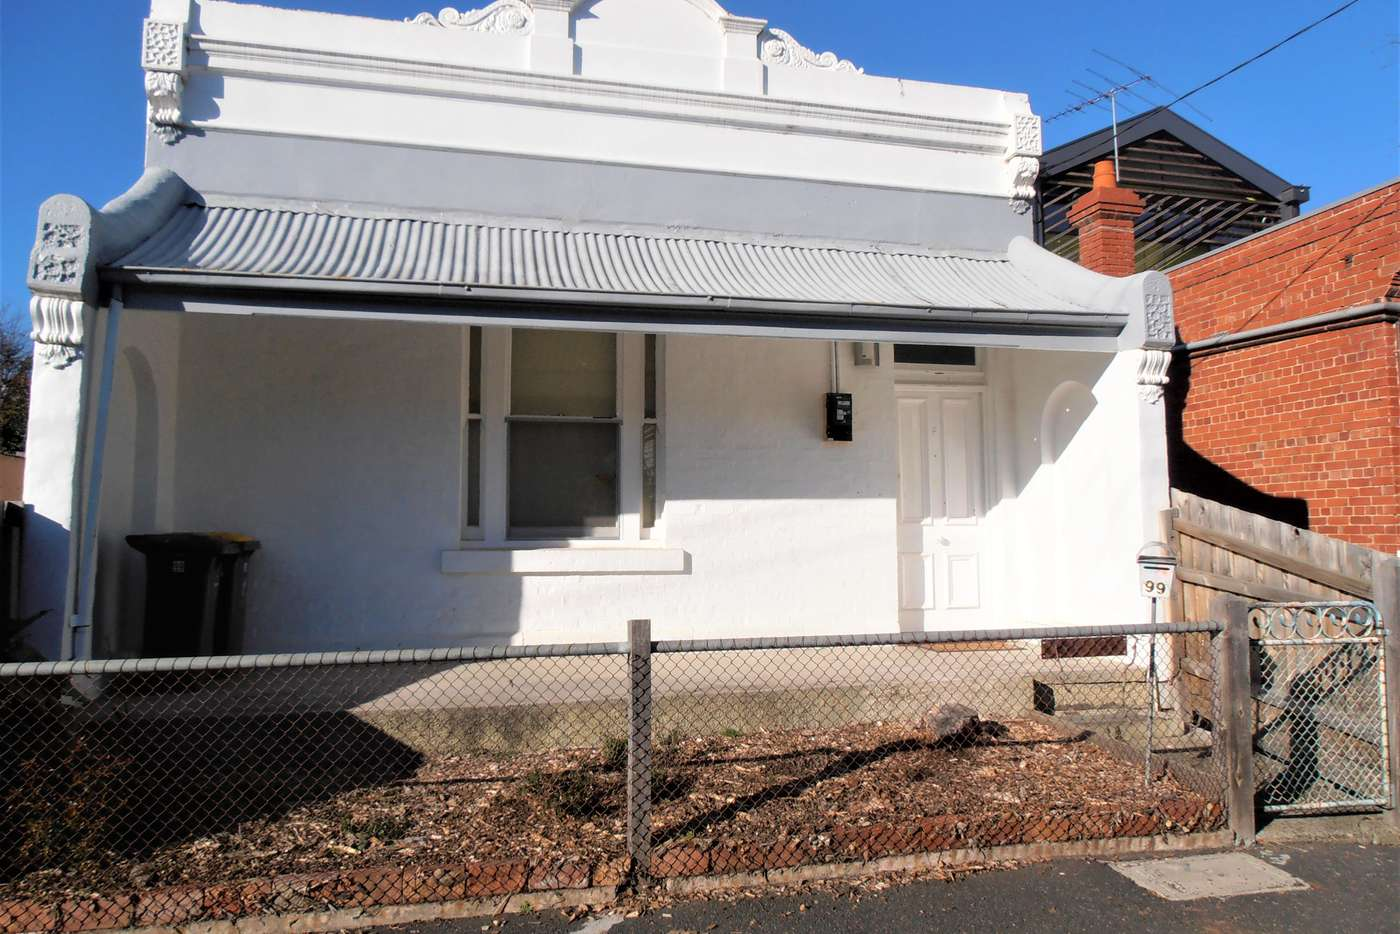 Main view of Homely house listing, 99 Ogrady Street, Clifton Hill VIC 3068